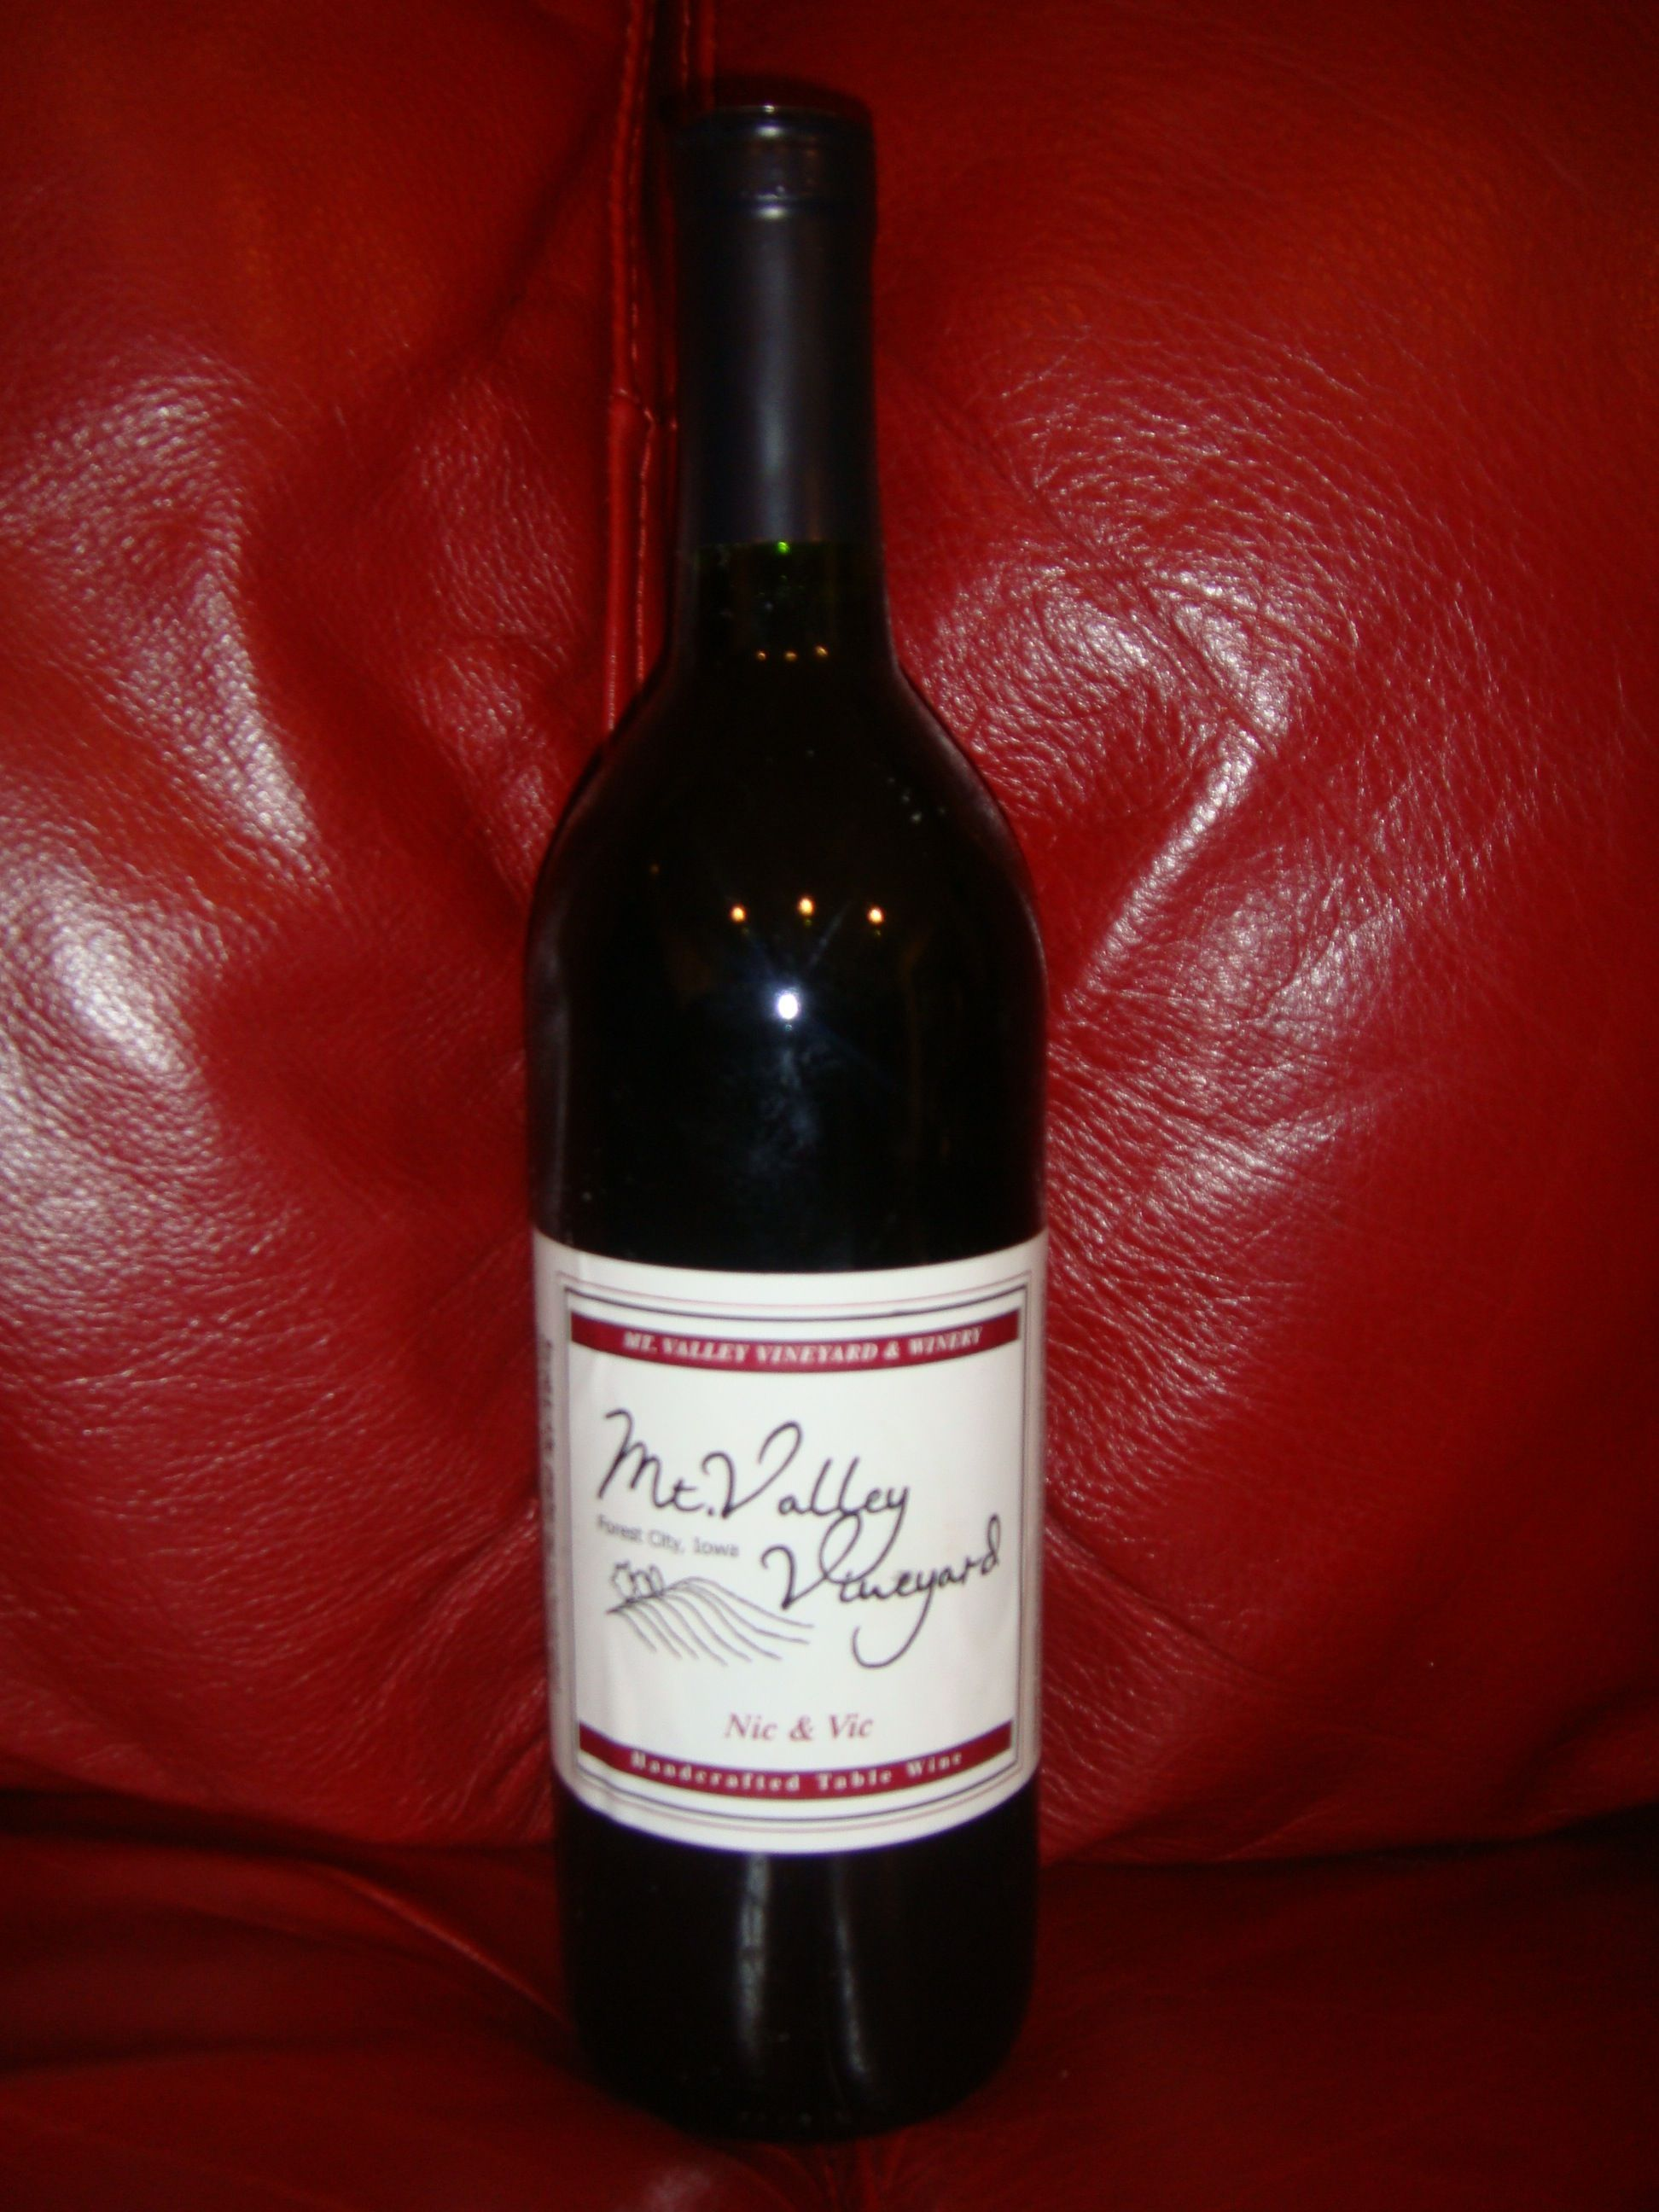 Nic Vic Handcrafted Table Wine By Mt Valley Vineyard In Forest City Ia Wine Bottle Wine Distillery